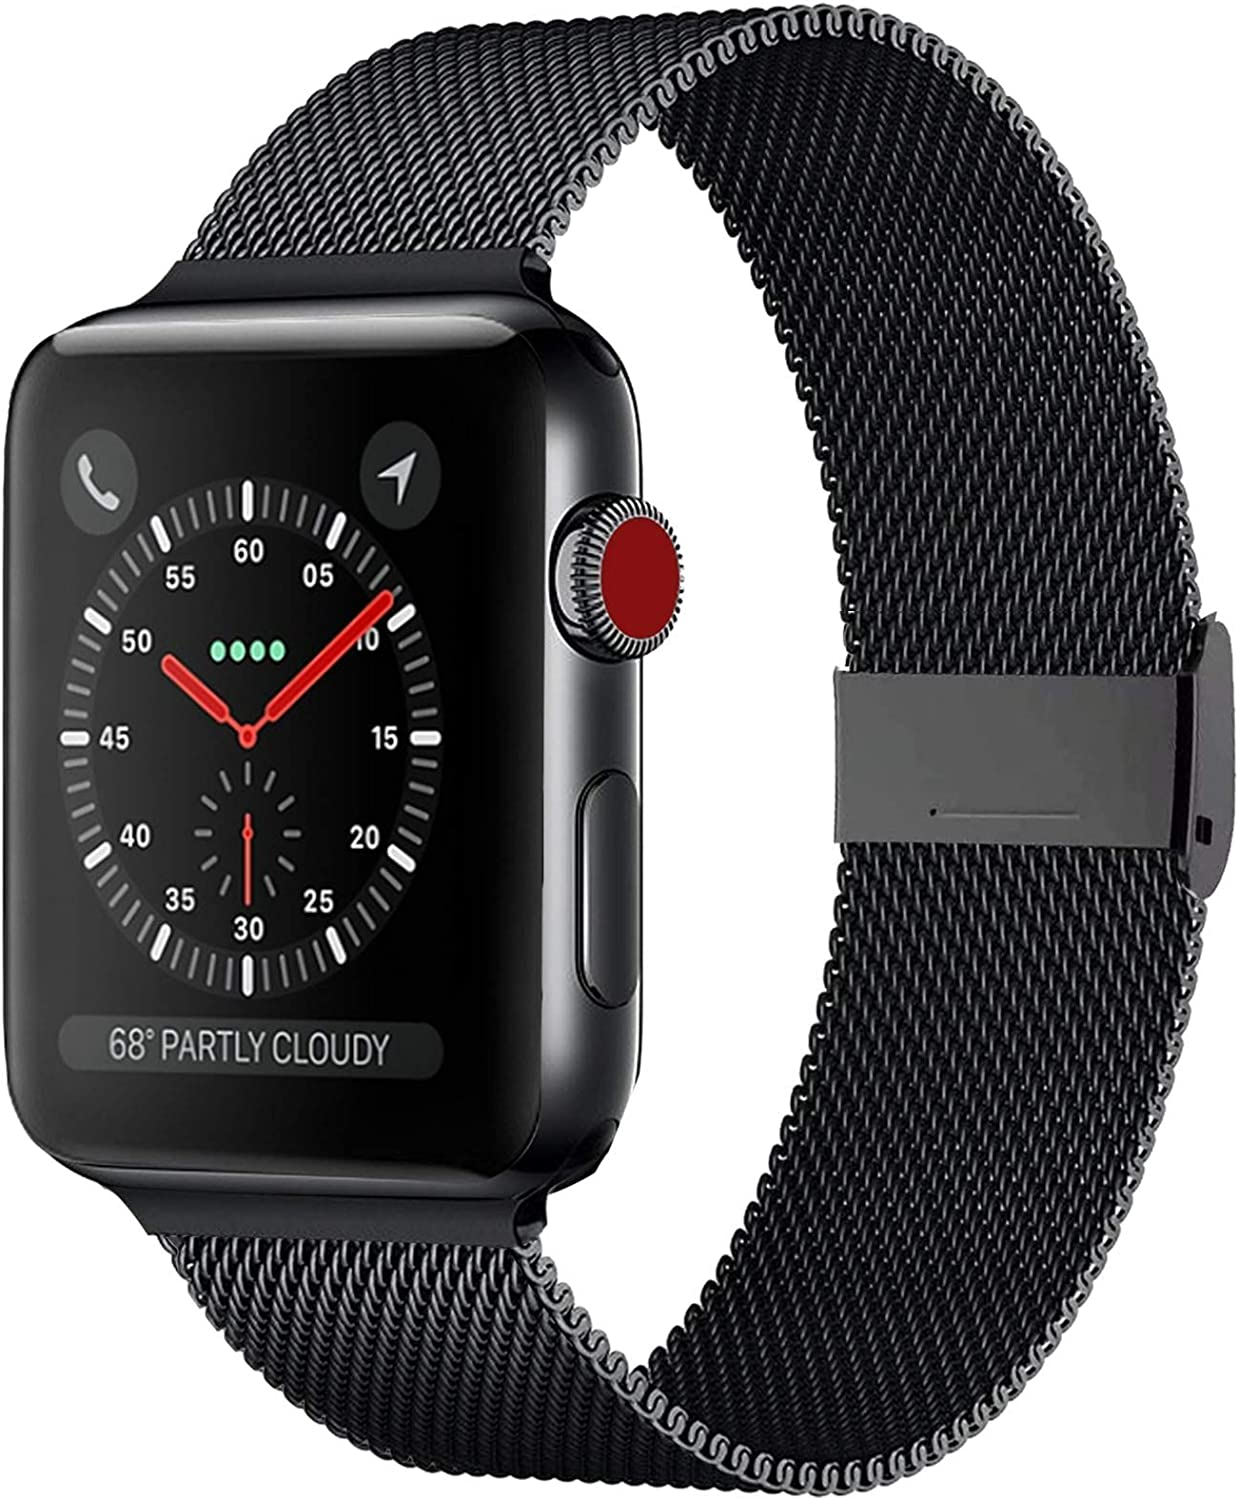 Compatible for Apple Watch Band 38mm 40mm 42mm 44mm, Sports Wristband Stainless Steel Metal Strap Replacement Band for Iwatch Series 6/SE/5/4/3/2/1,42mm,Black